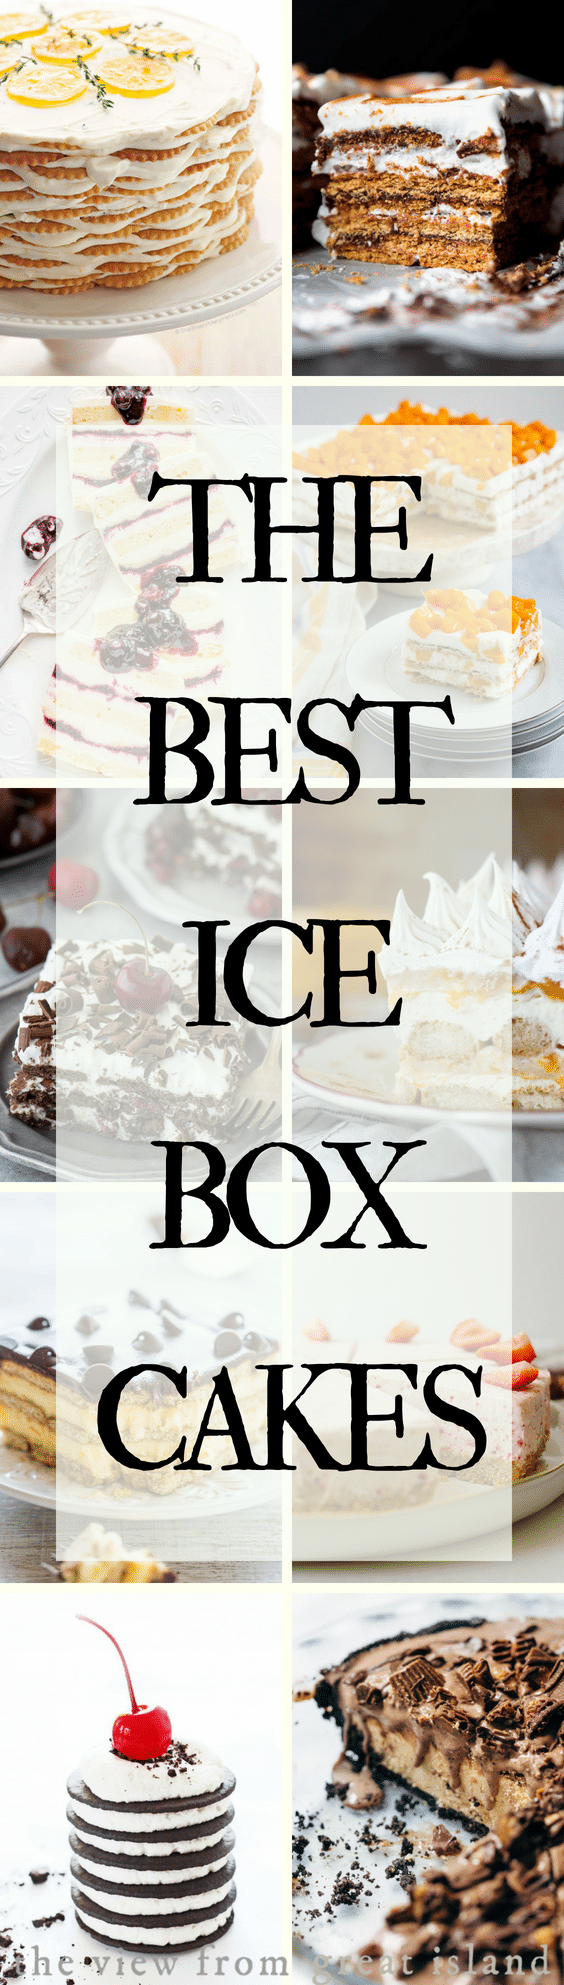 Icebox Cake Recipes for the dog days of summer...#cakes #icecream #frozen #nobake #pie #dessert #summerdessert #tiramisu #lemon #chocolate #strawberry #roundup #peanutbutter #grahamcracker #famouswafers